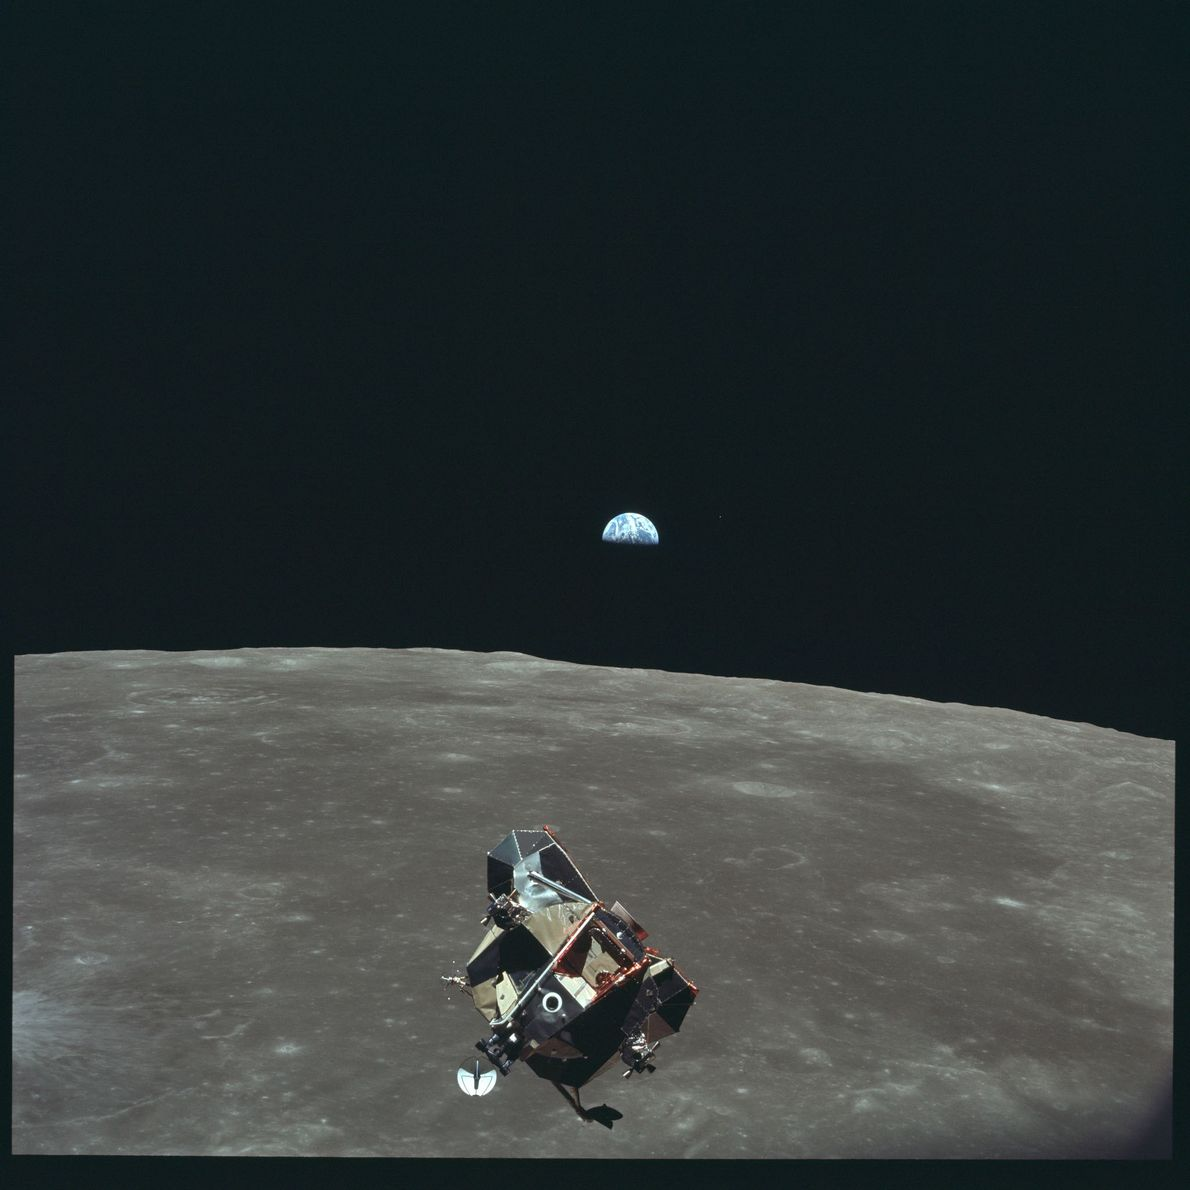 Photographed from the command module while in orbit, the Apollo 11 lunar module floats above the ...